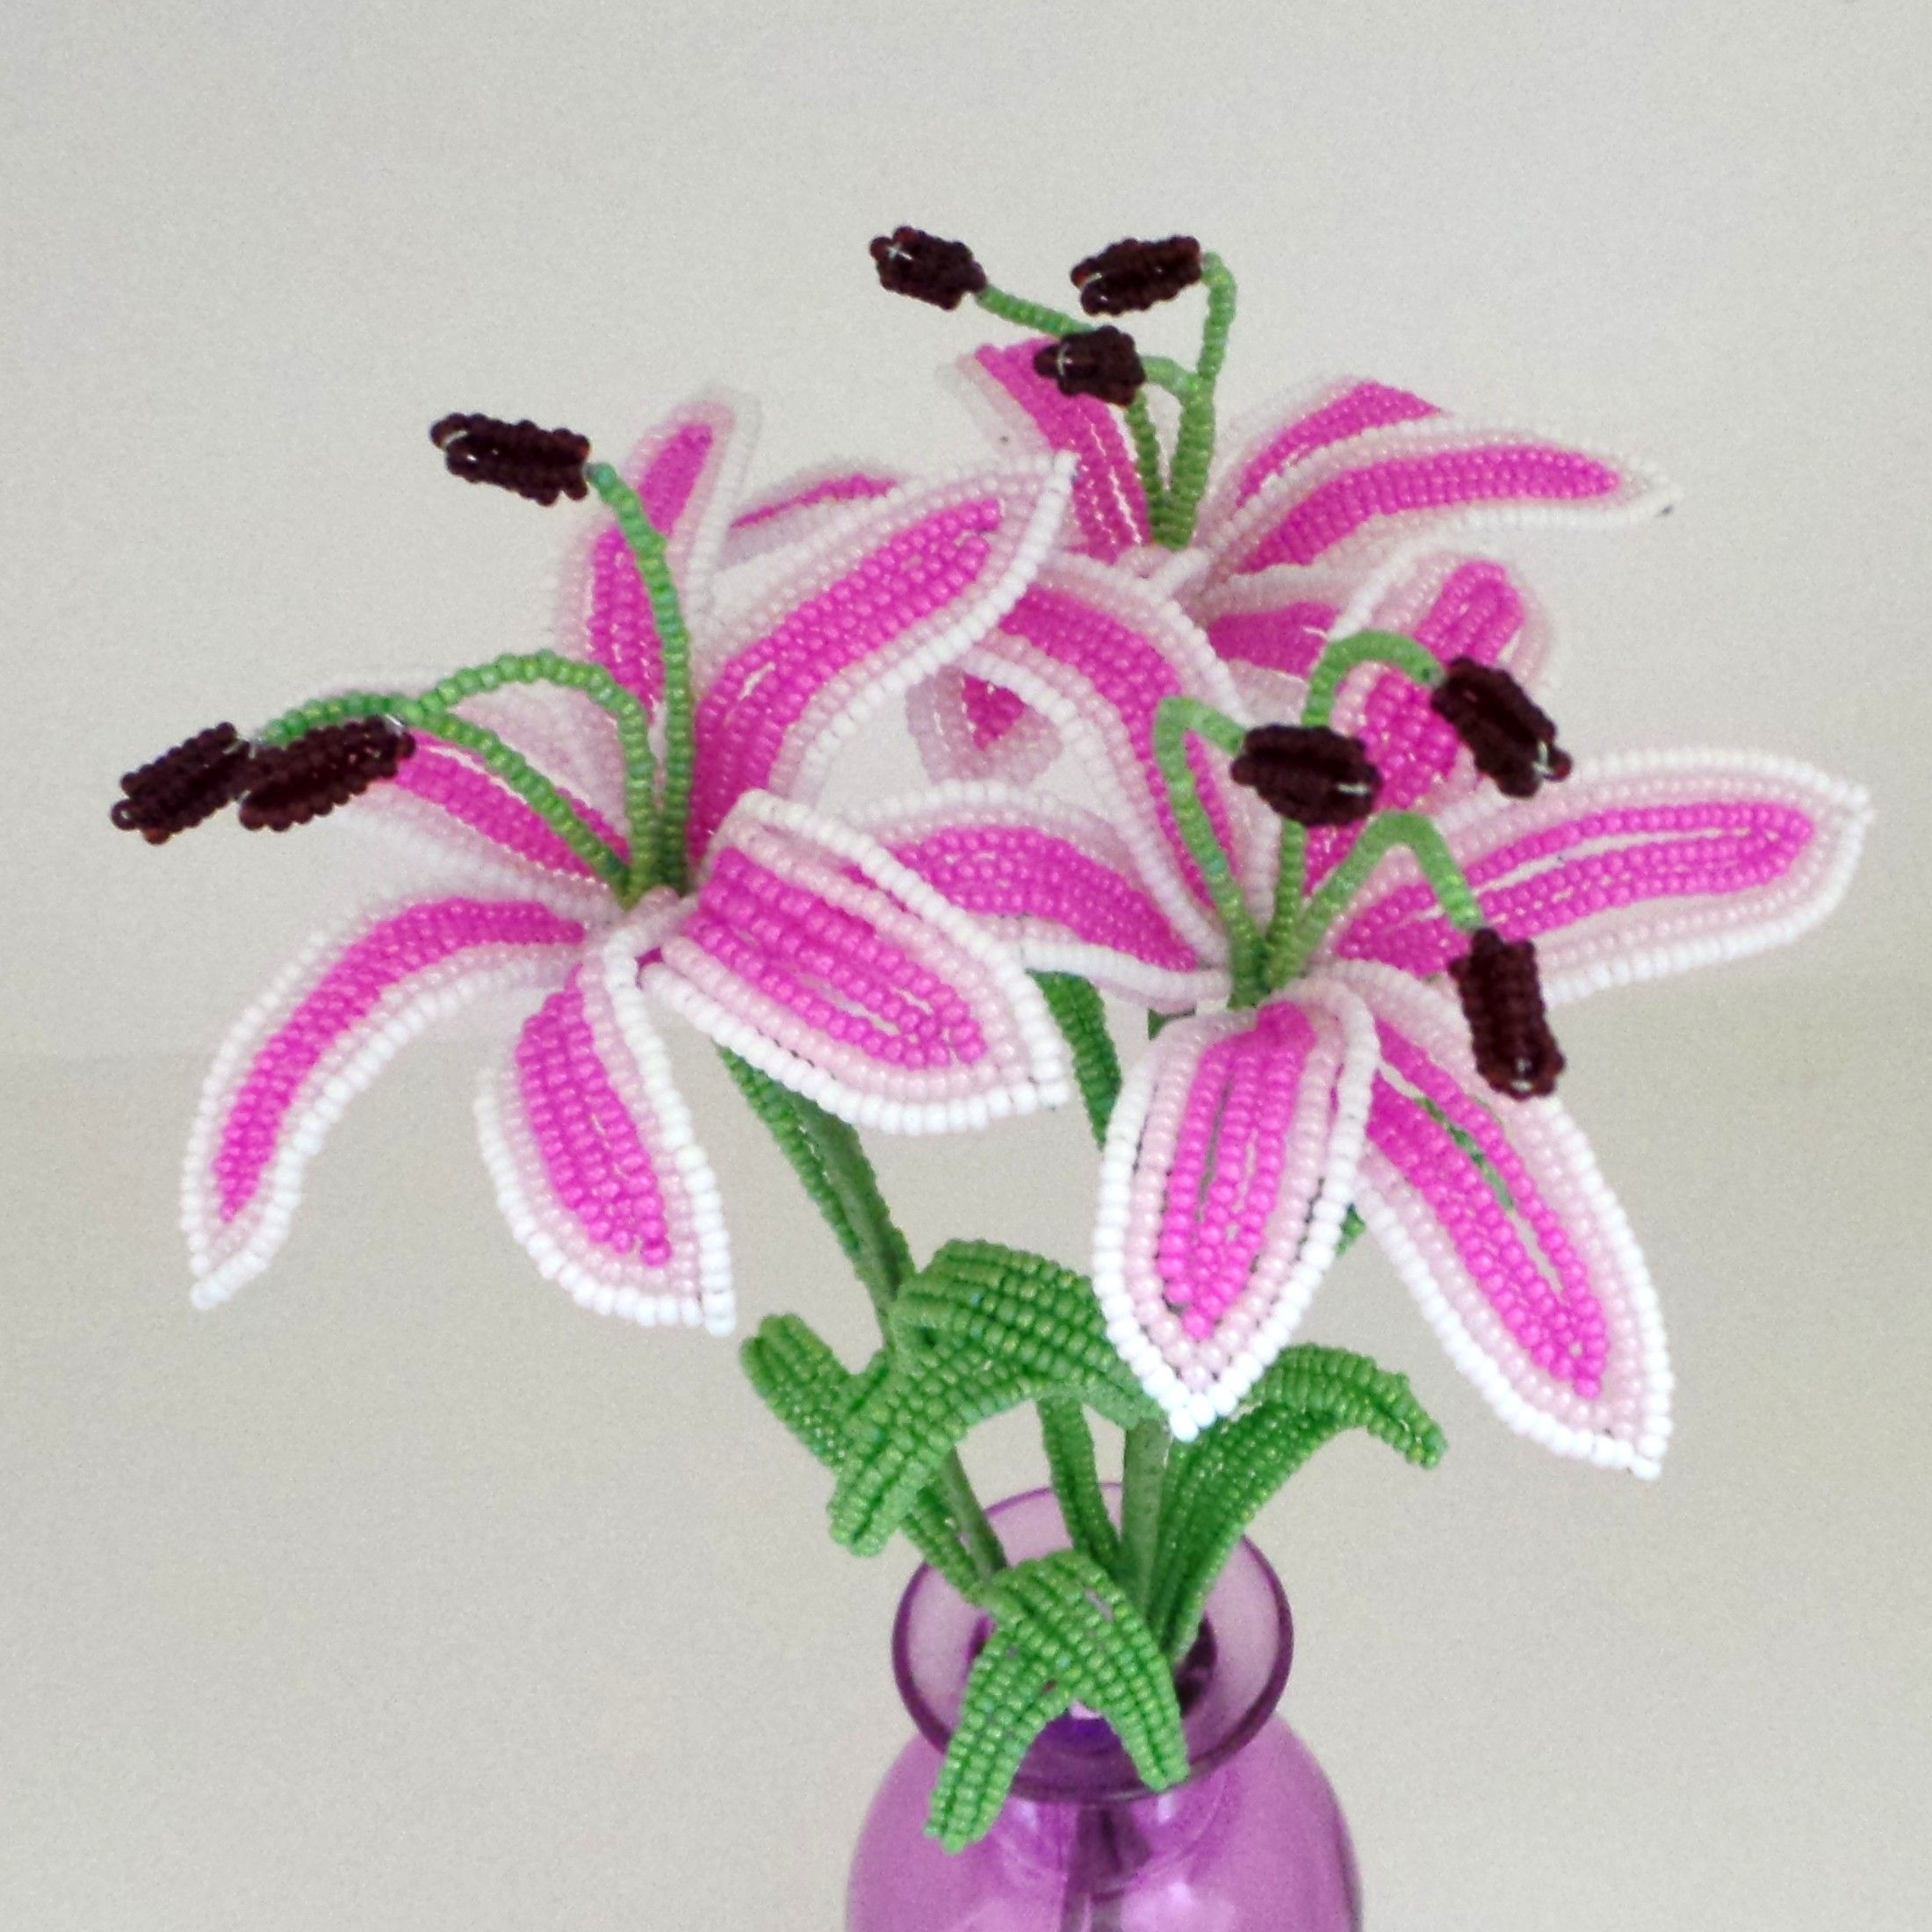 French beaded stargazer lilies french beaded and more pinterest french beaded stargazer lilies izmirmasajfo